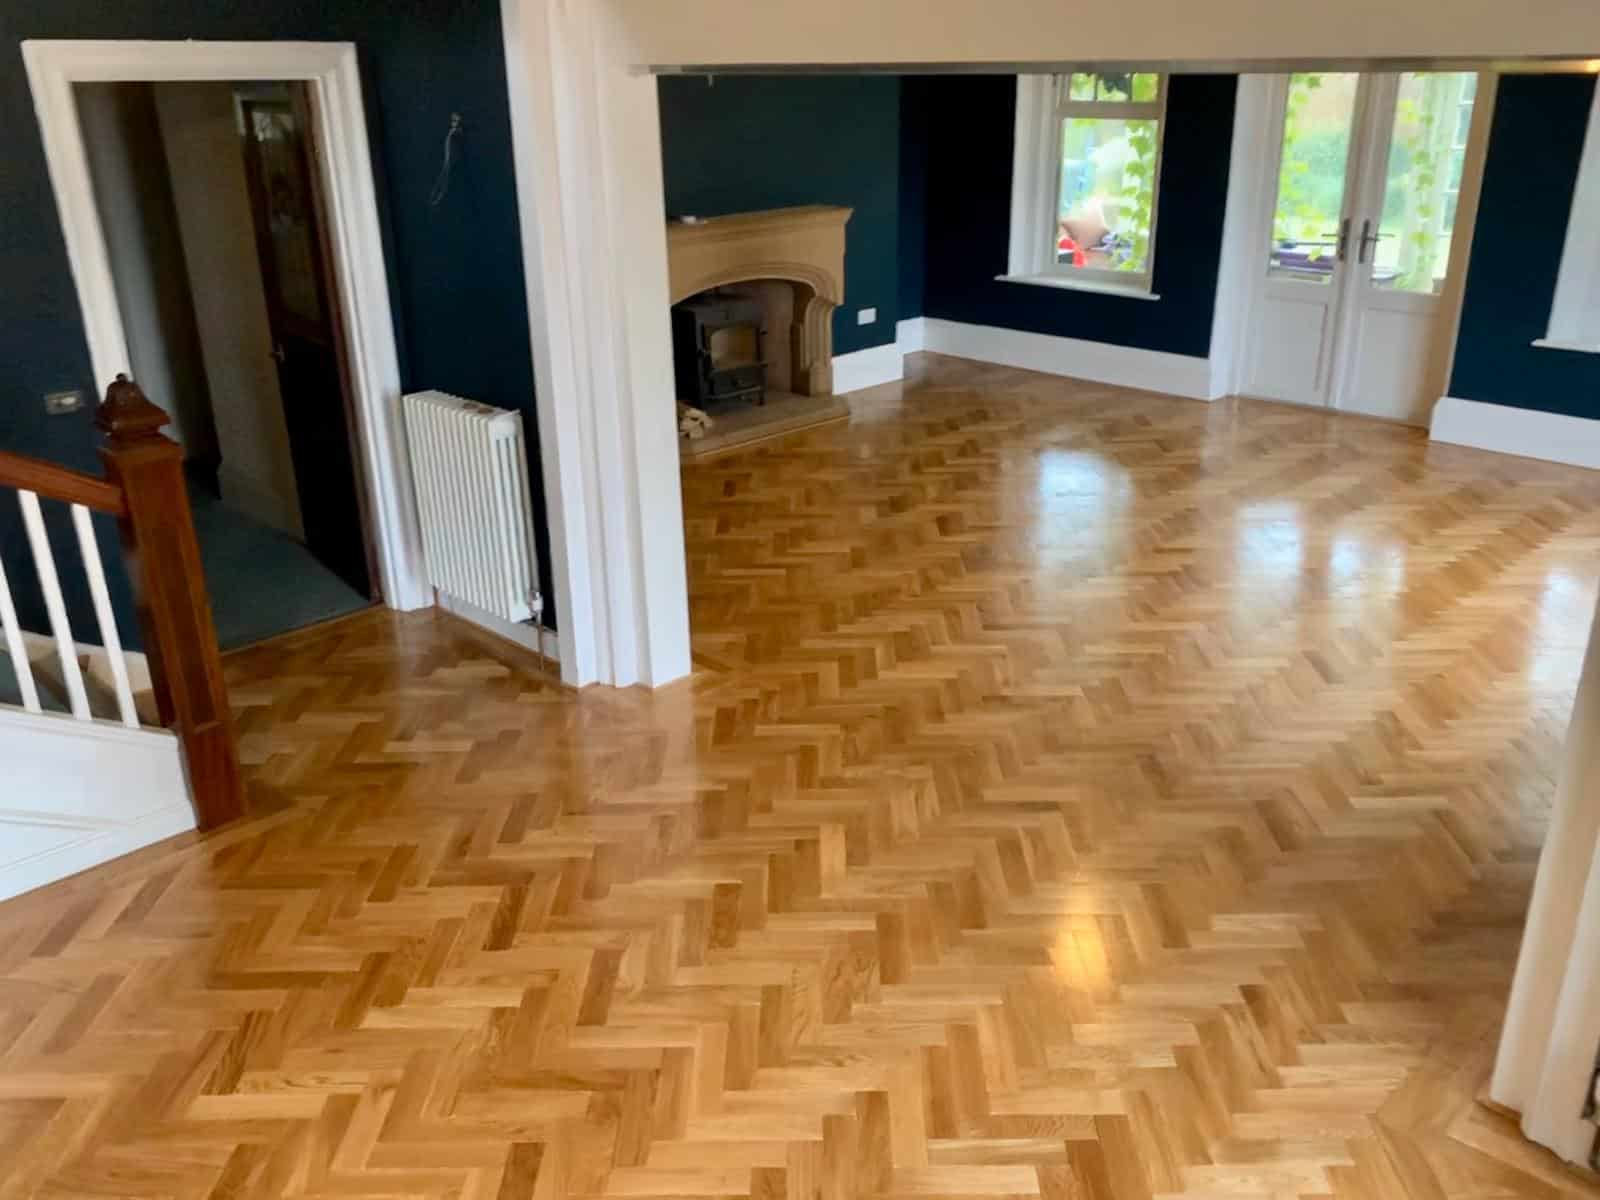 Tumbled Oak Parquet Flooring for a Home with Kids & Pets 1